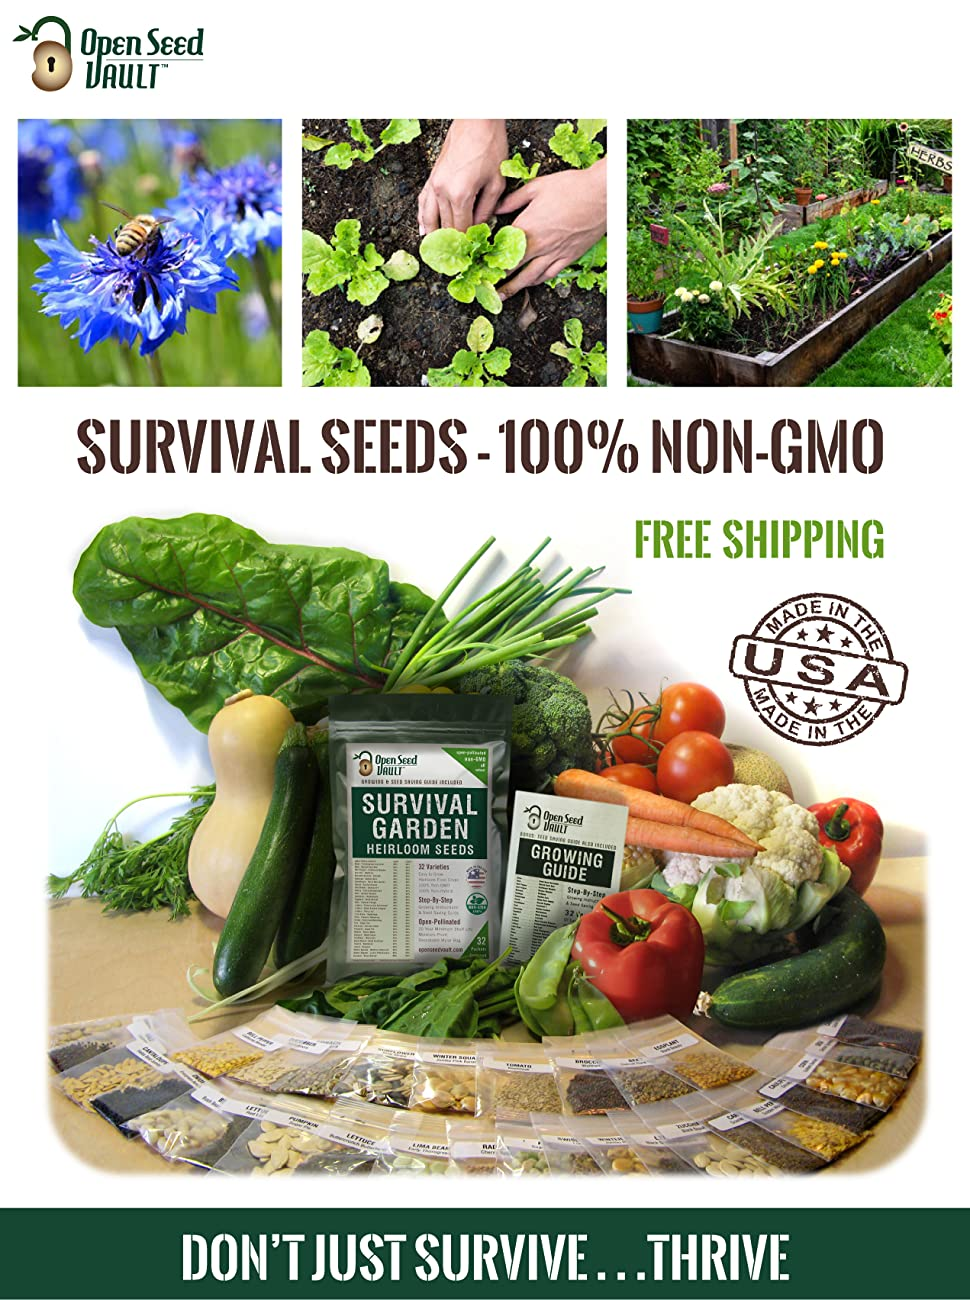 Garden Chives Variety Non-GMO Organic Herb Seeds Suited for Canadian Climate Non-Hybrid Packet 100 Seeds Open-Pollinated